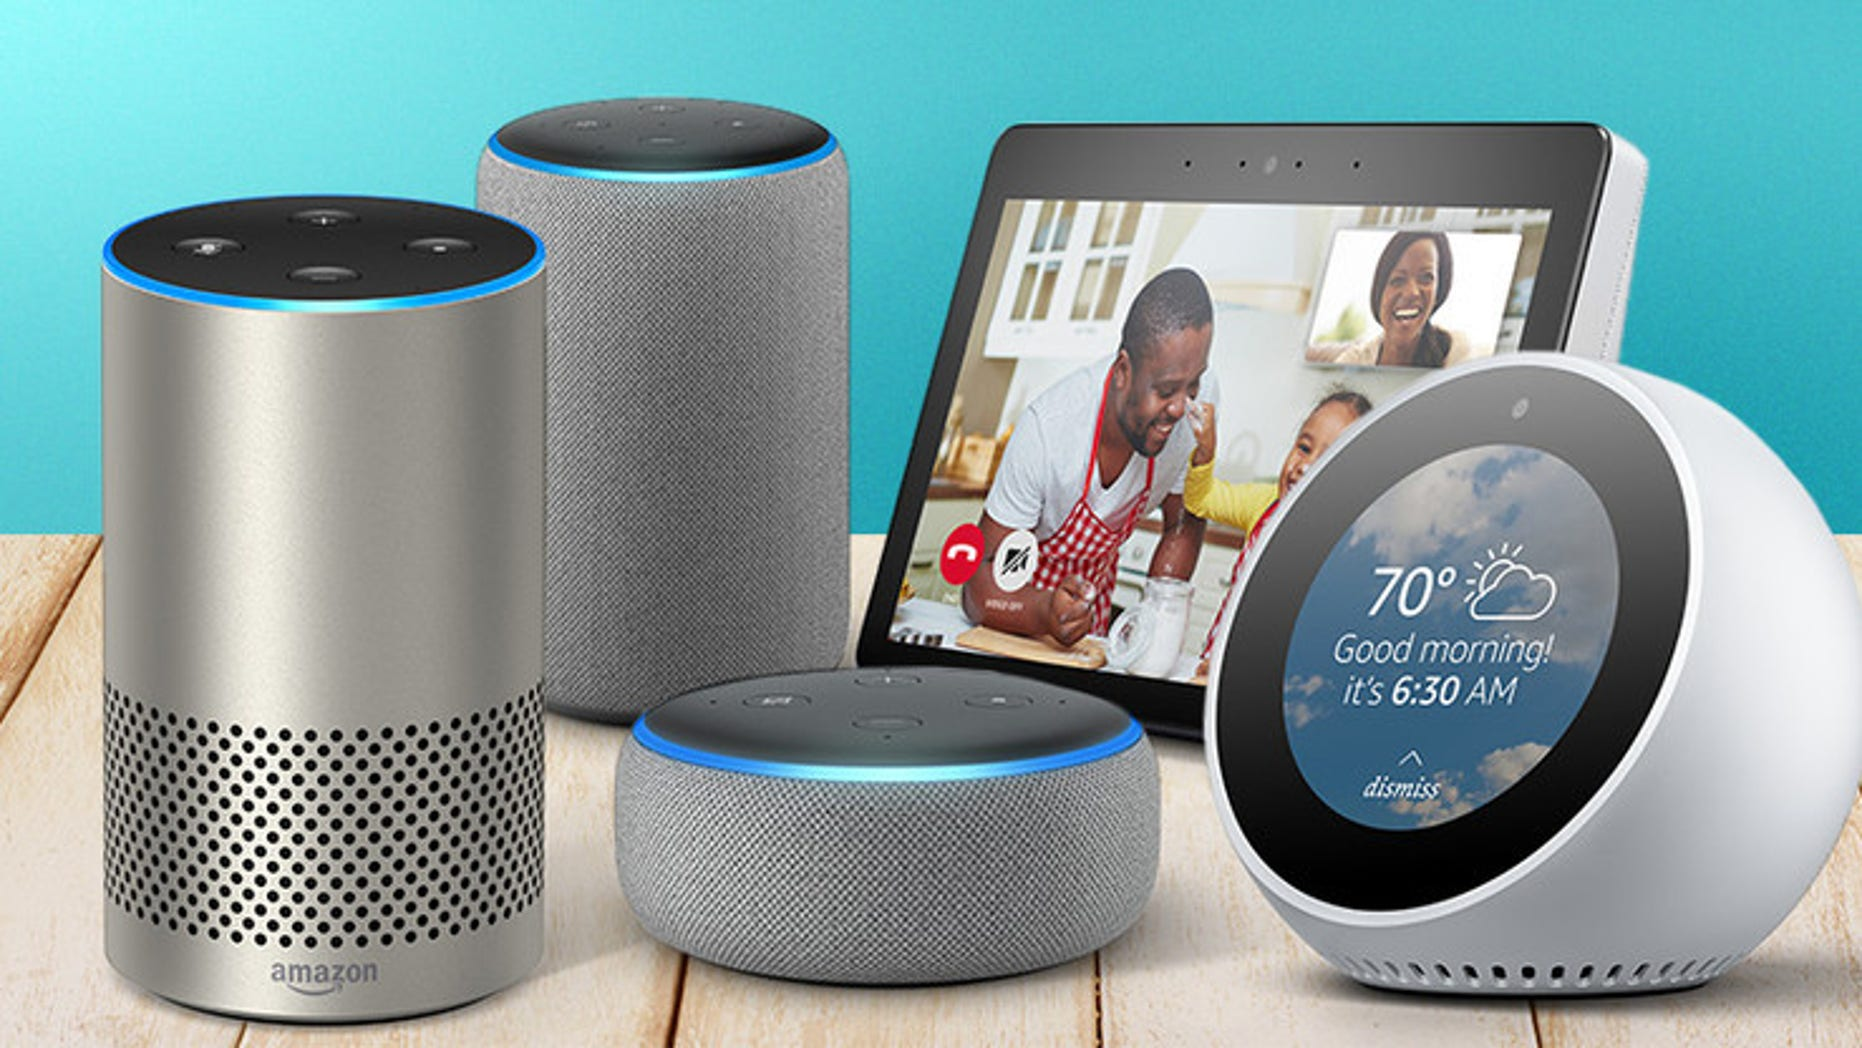 Here's how to keep hackers away from your smart speakers, cameras and network.